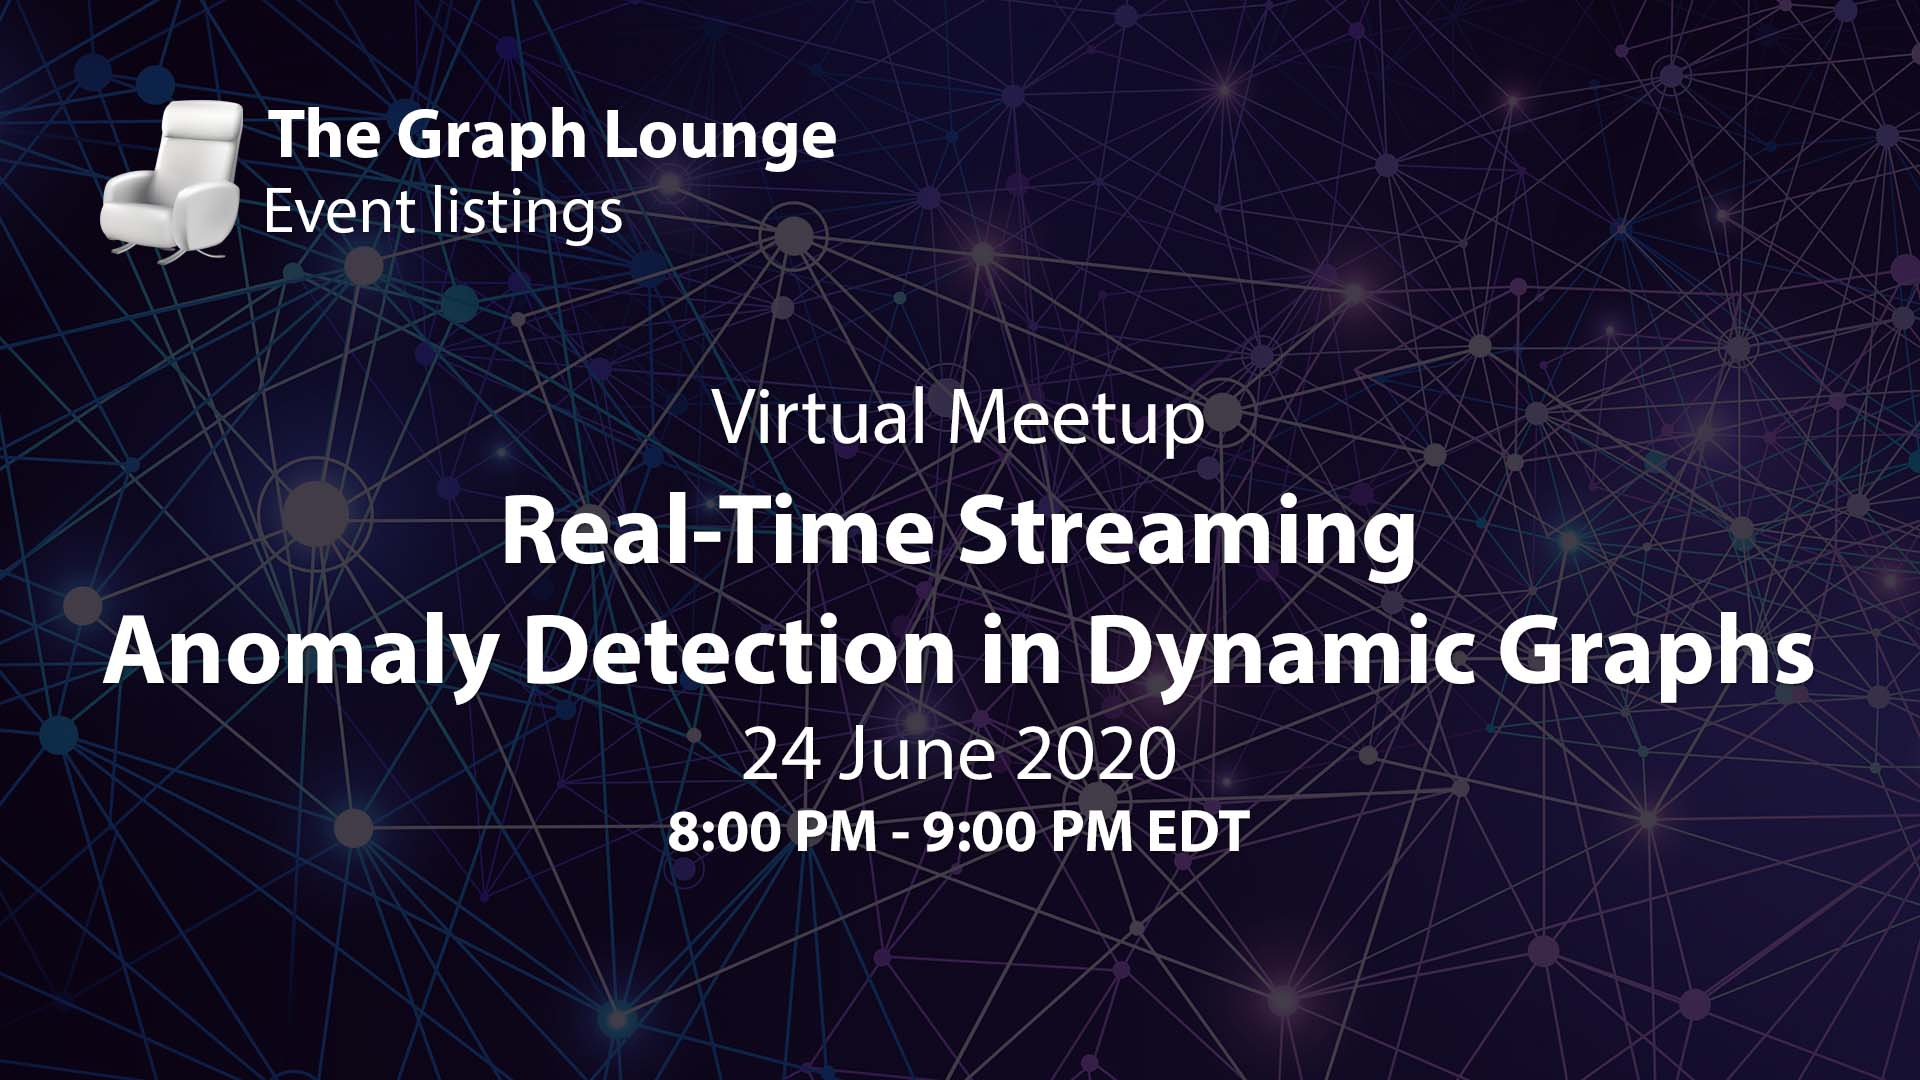 Real-Time Streaming Anomaly Detection in Dynamic Graphs